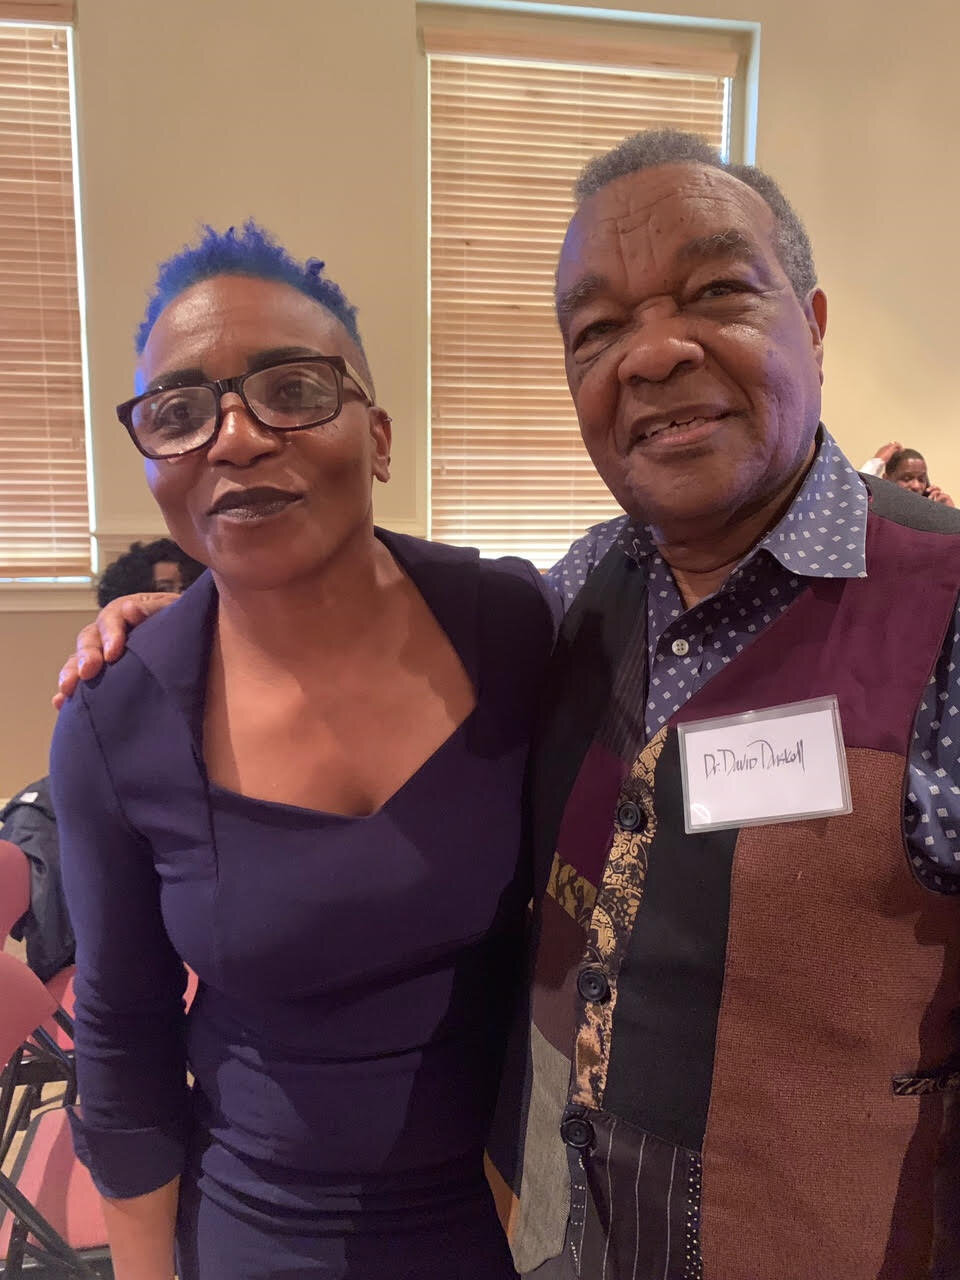 PhD Candidate, Nancy W. Bookhart, with Dr. David Driskell, at the Conference of the Harlem Renaissance. October, 2019 at Paine College, GA